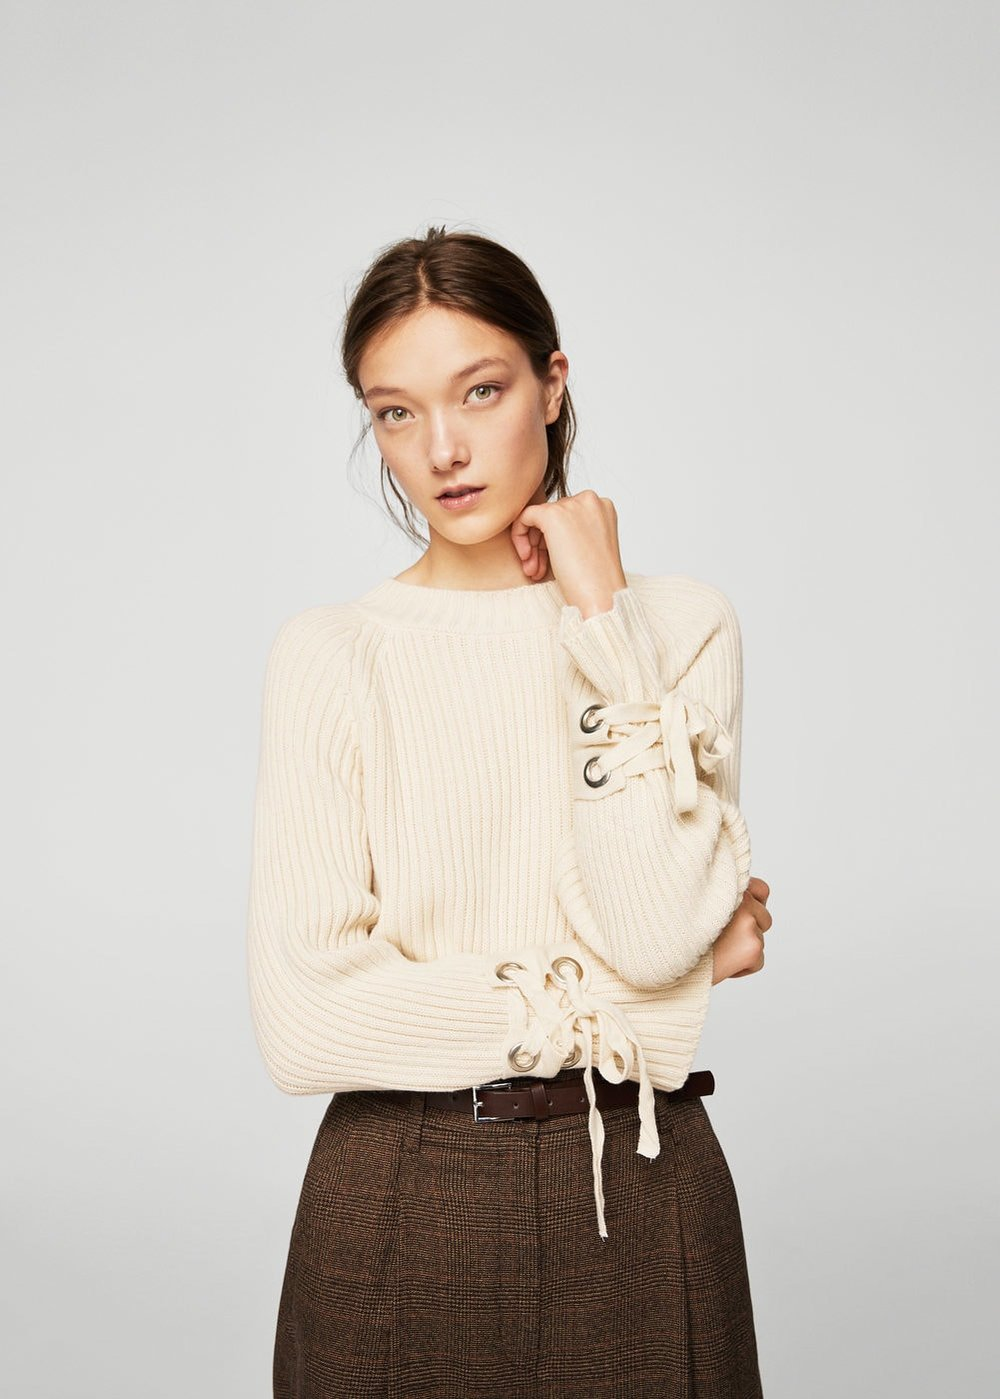 Bow textured sweater - 89.99 CAD